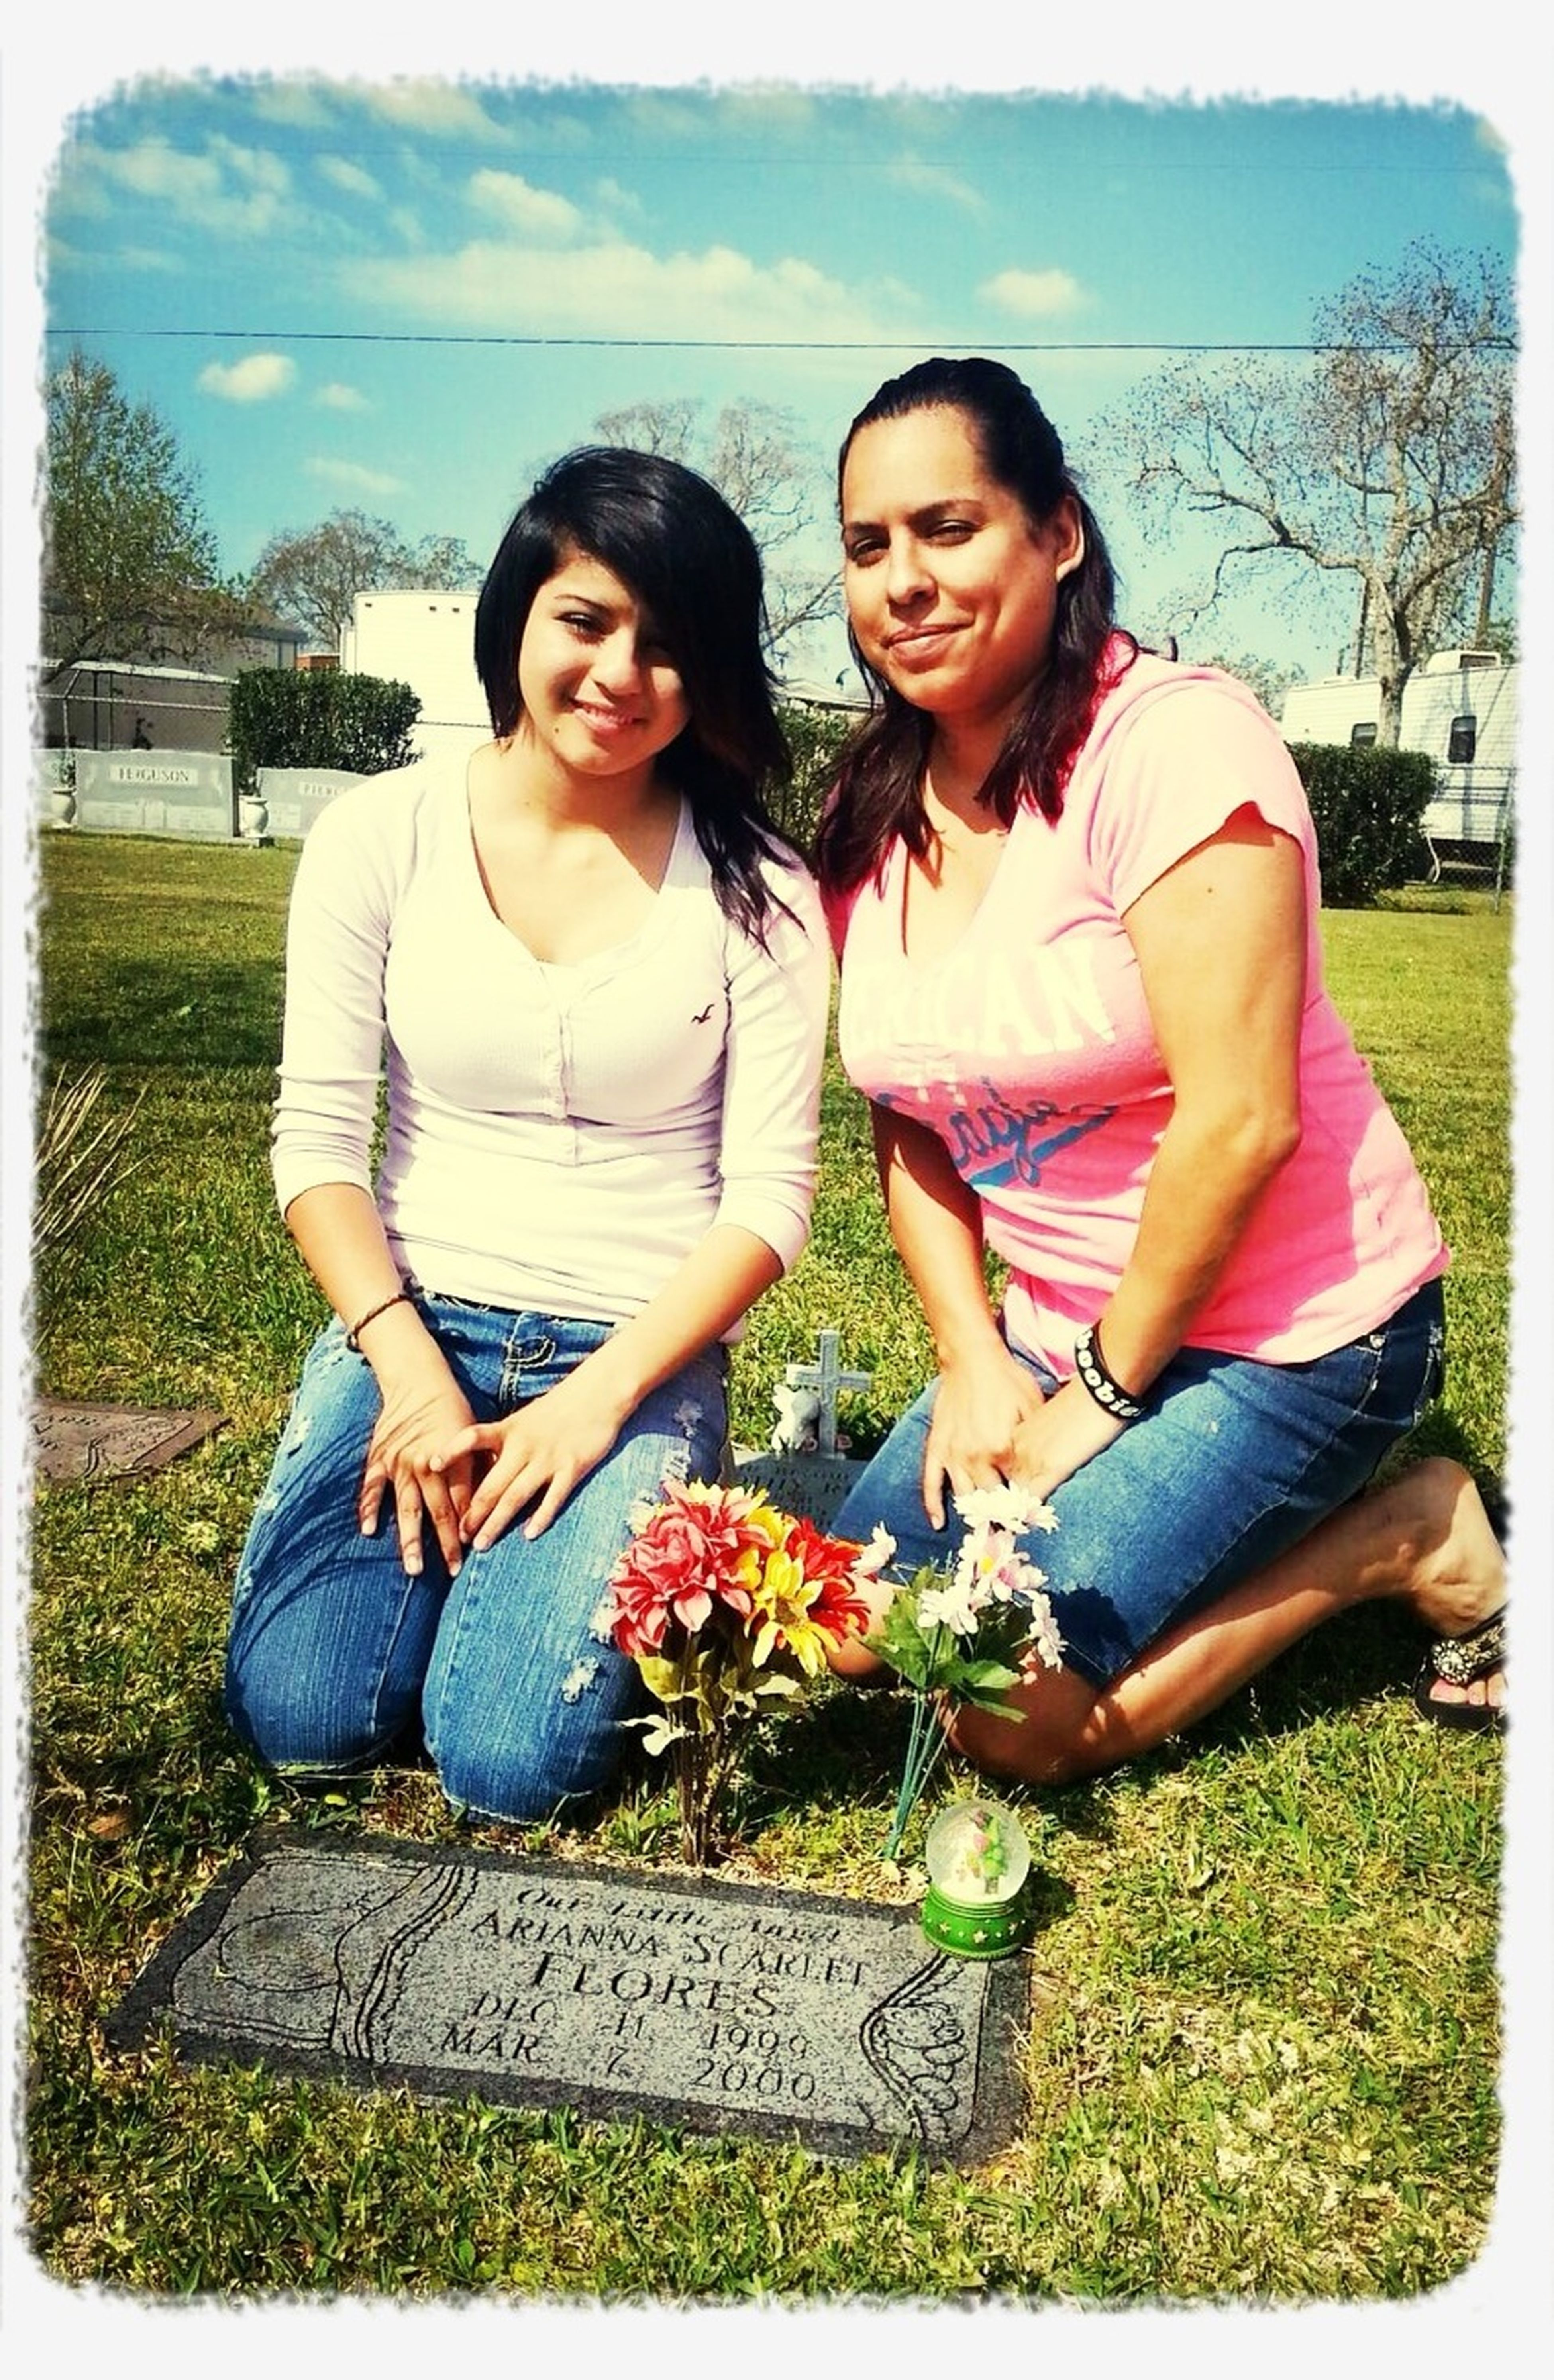 Me and my daughter, Monica ..:) visiting my baby girl ..RIP Arianna Scarlett